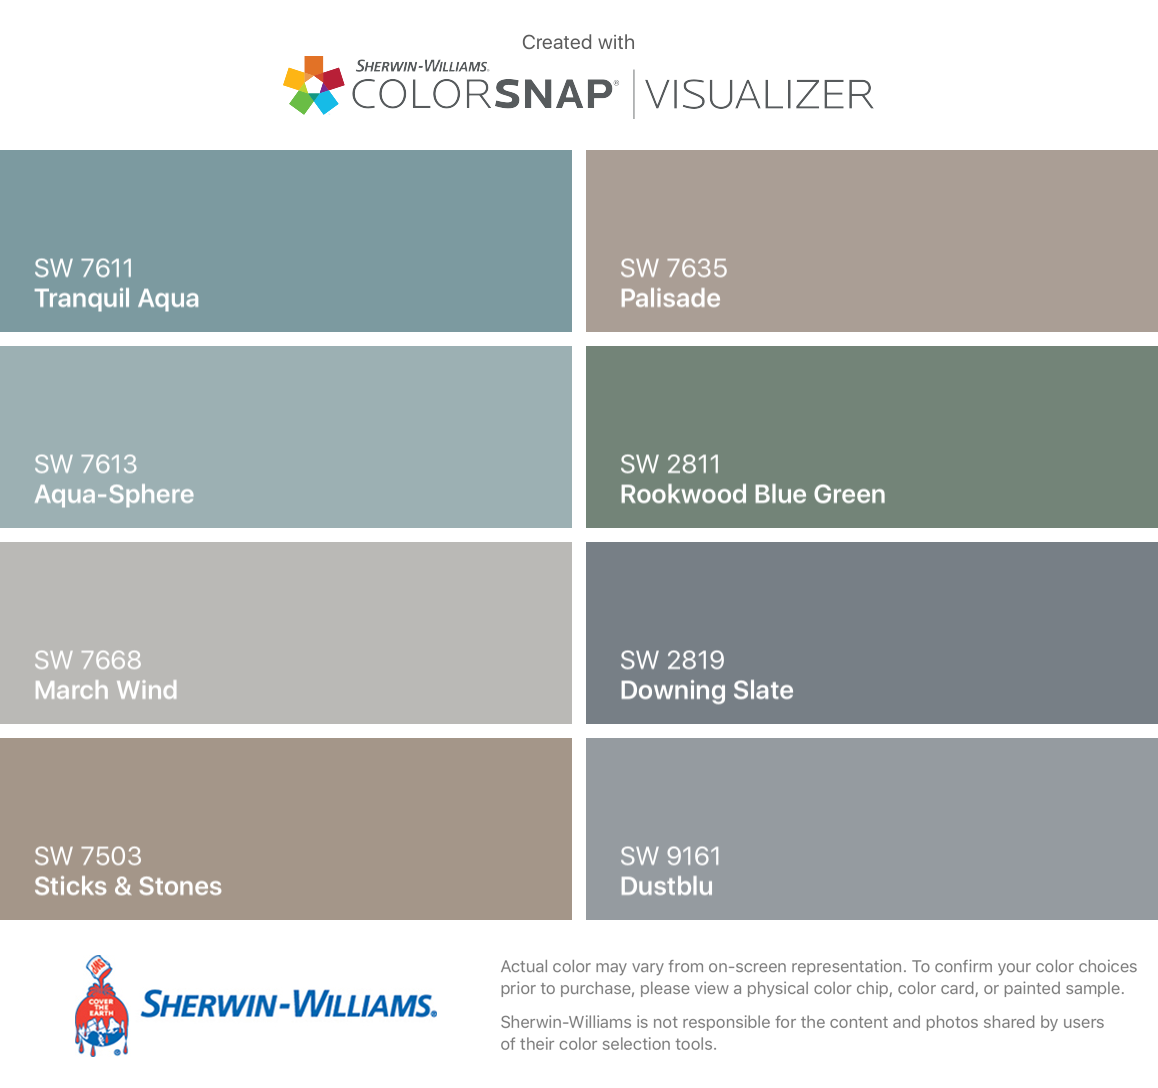 I Found These Colors With Colorsnap Visualizer For Iphone By Sherwin Williams Tranquil Aqua Sw 7611 Aqua Sphere Paint Colors For Home Agreeable Gray Color